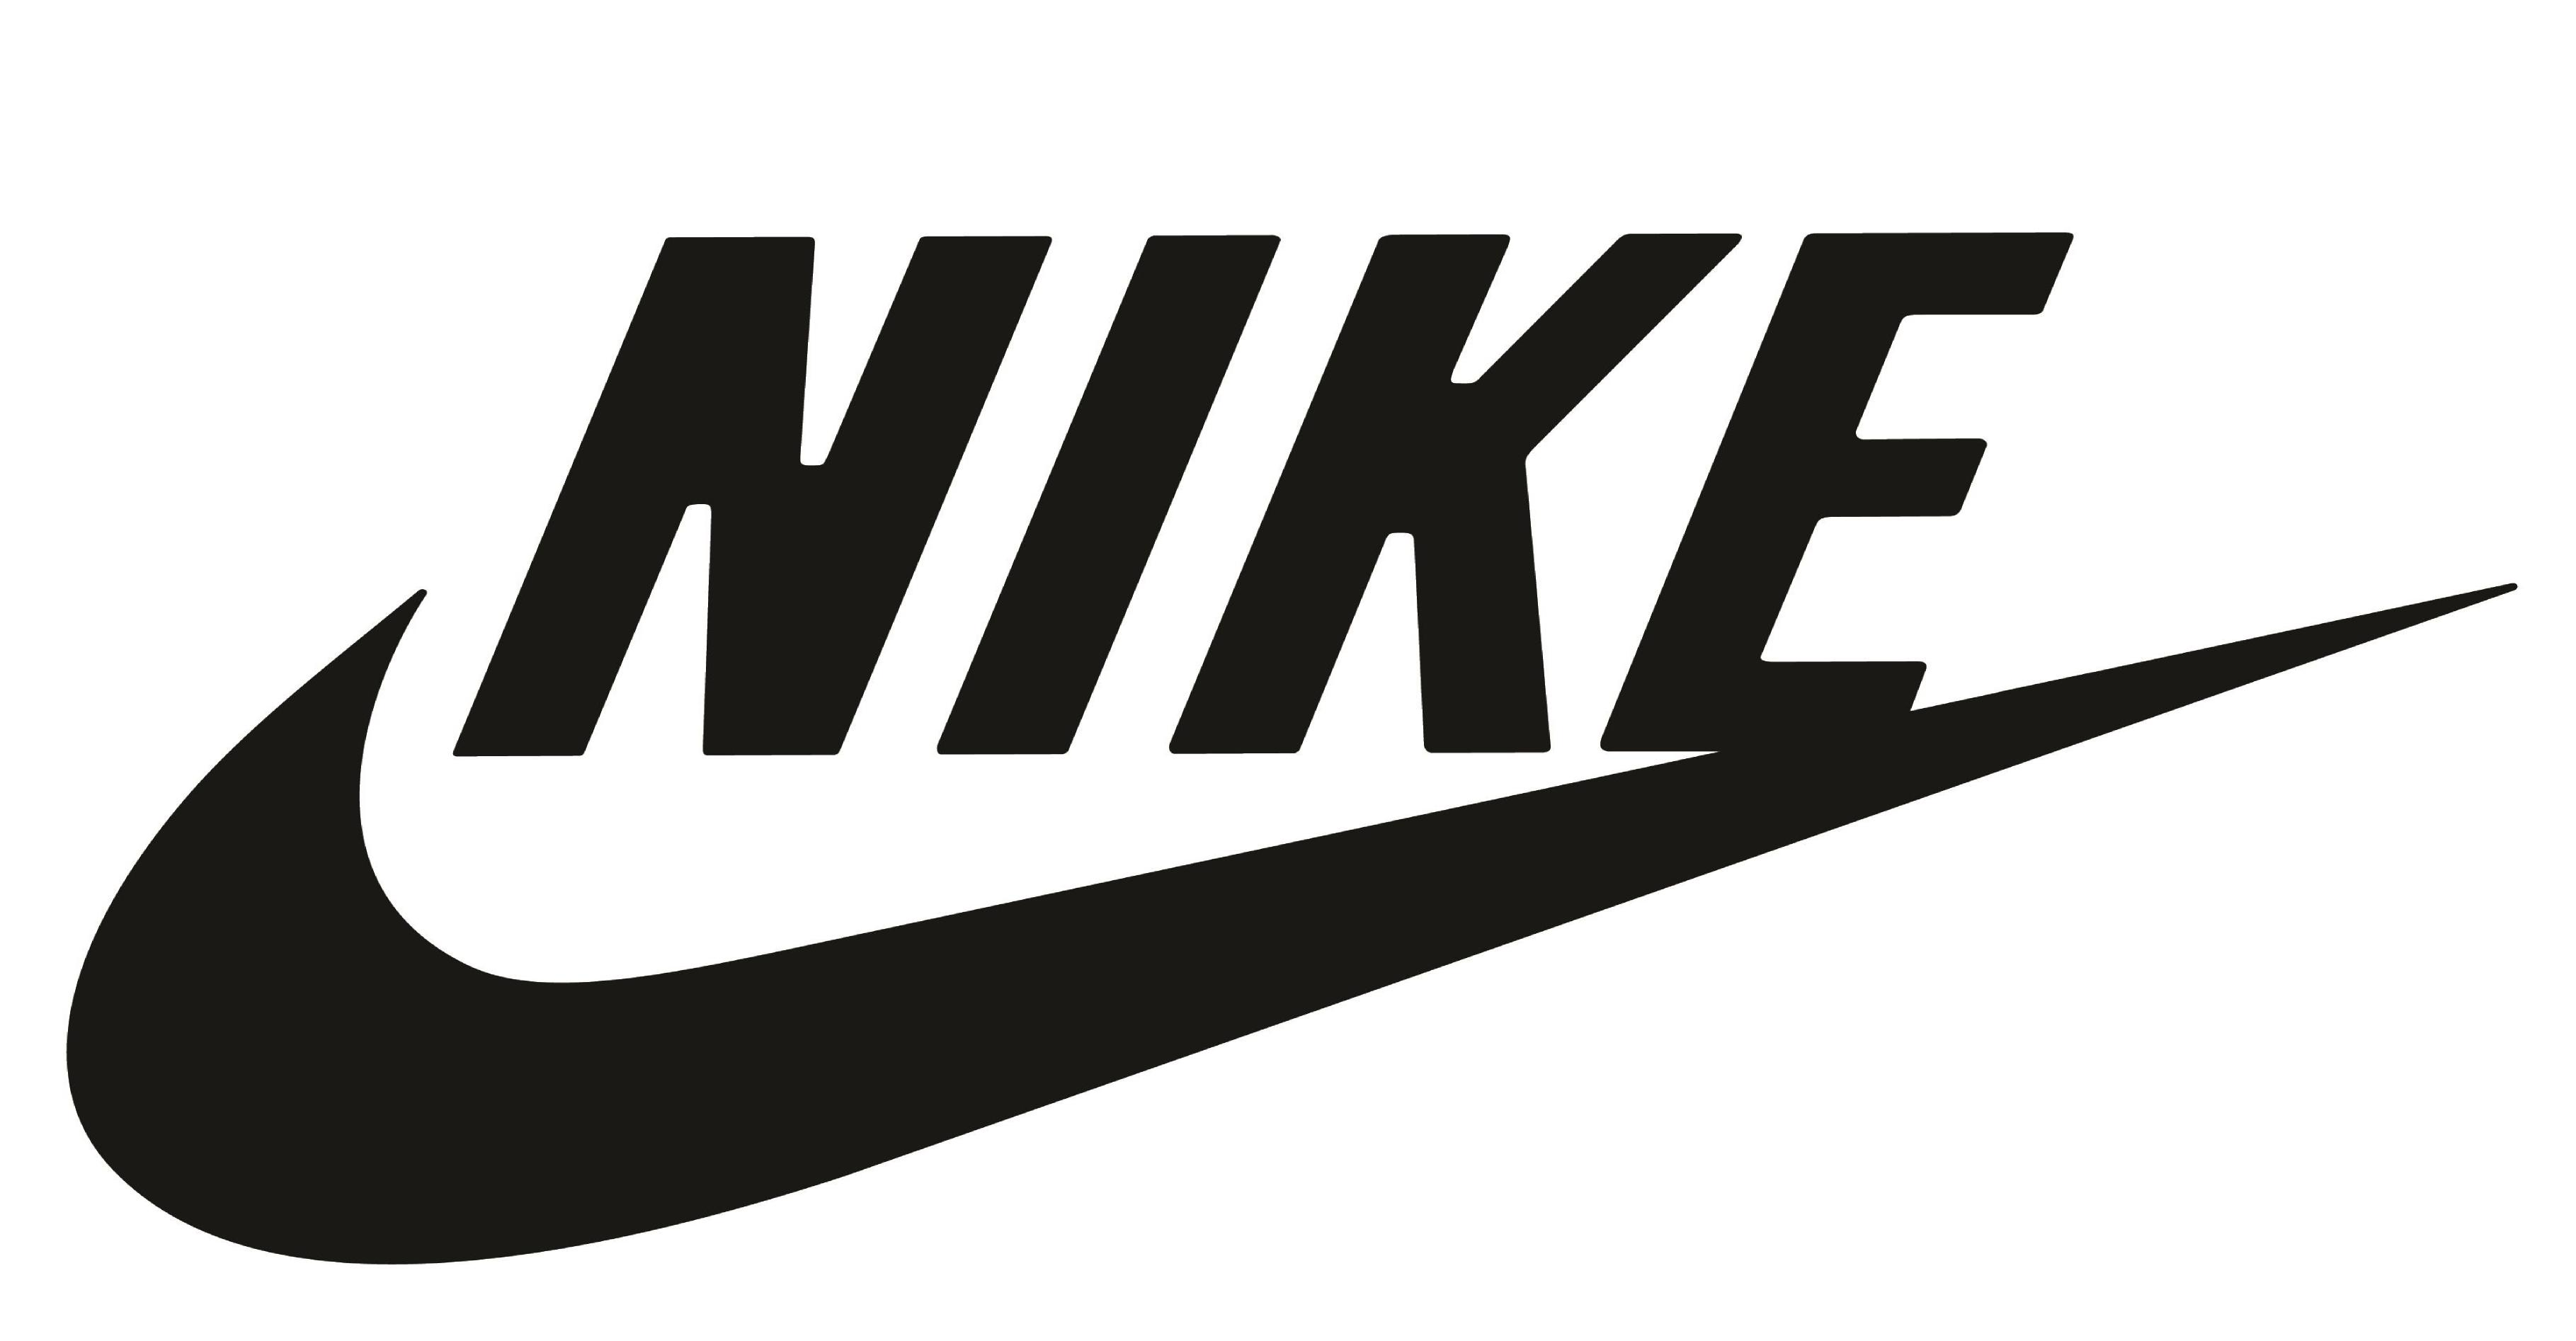 Up to 50% Off Women's Nike Shoes Sale @ FinishLine.com